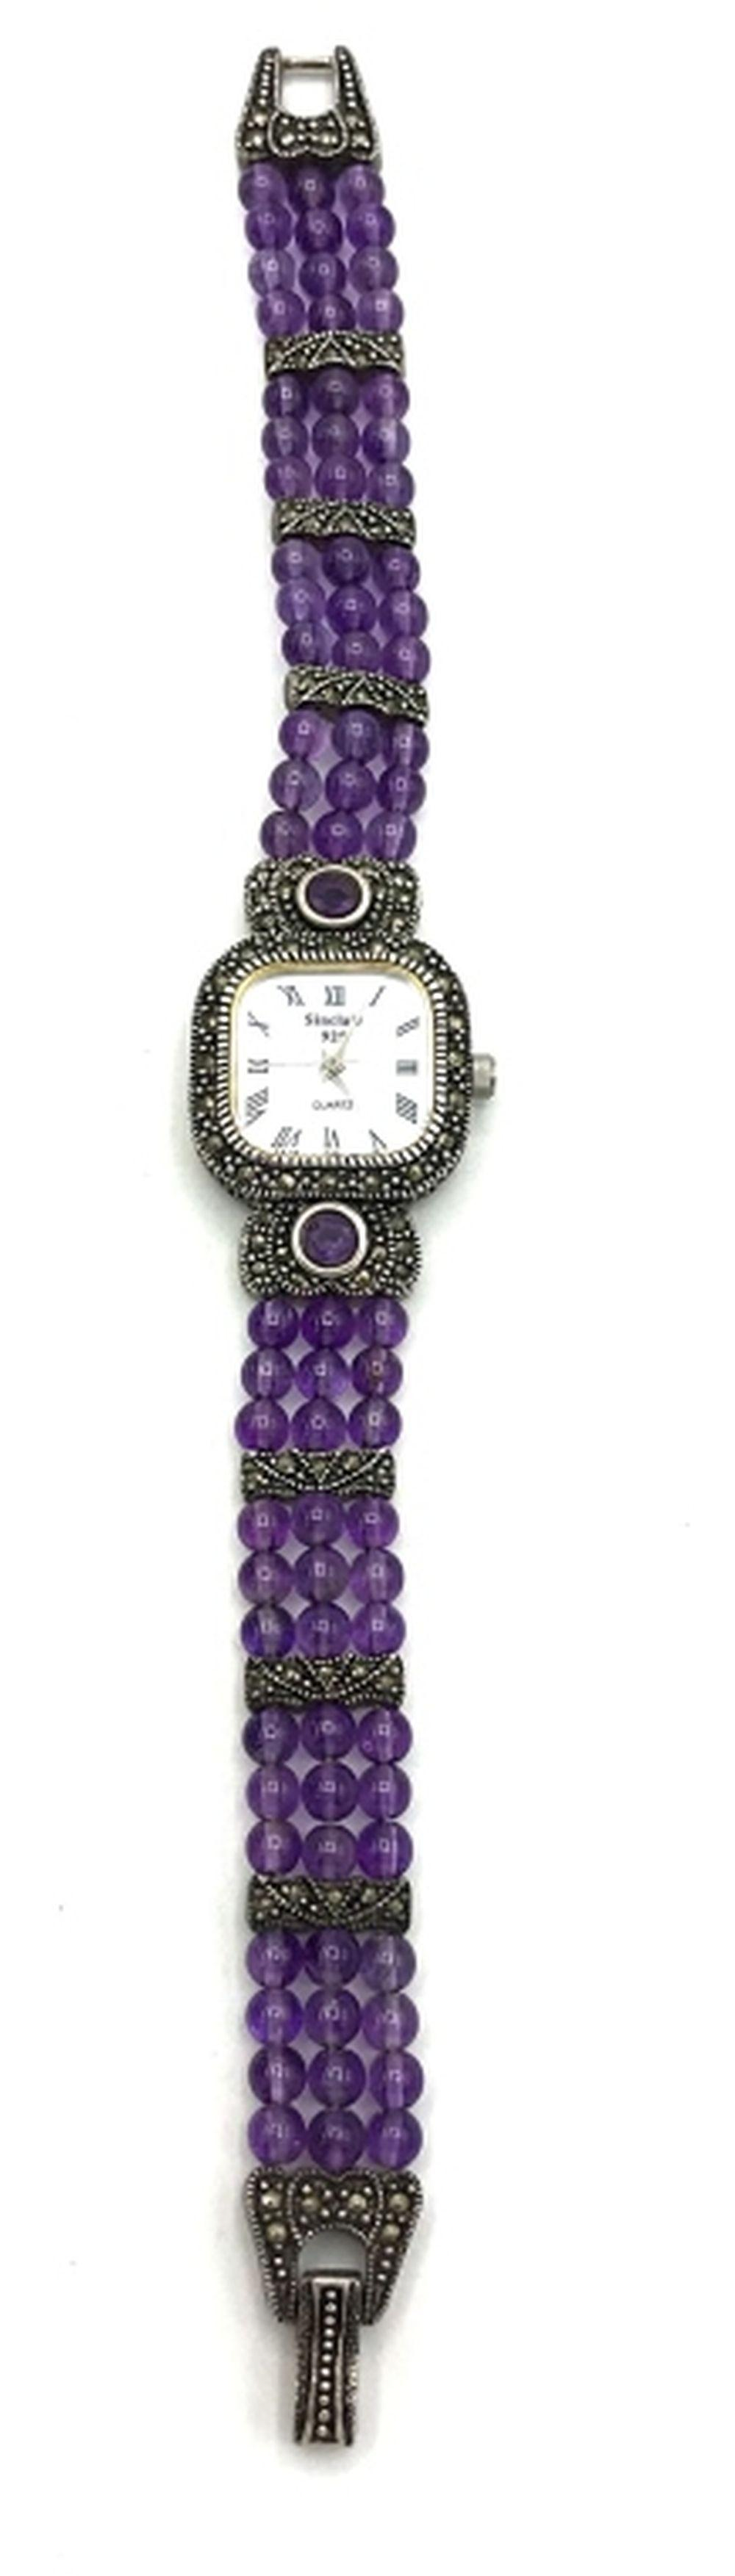 SINCLAIR .925 MARCASITE WATCH BEADED BAND